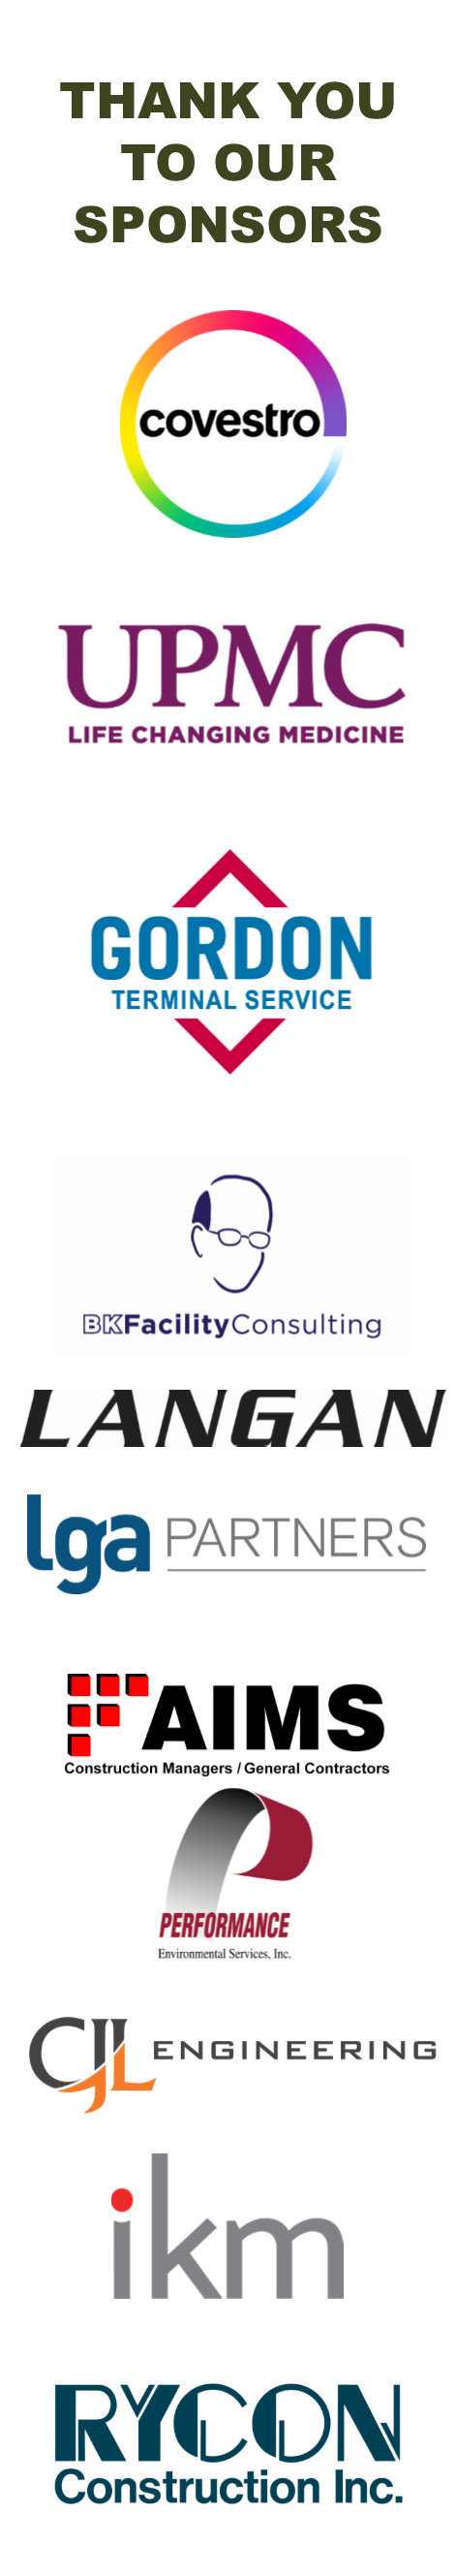 text Thank you to our sponsors followed by logos for Covestro, UPMC, Gordon Terminal Service, BK Facility Consulting, Langan, LGA Partners, AIMS & Performance Environmental, CJL Engineering, IKM Inc, and Rycon Construction